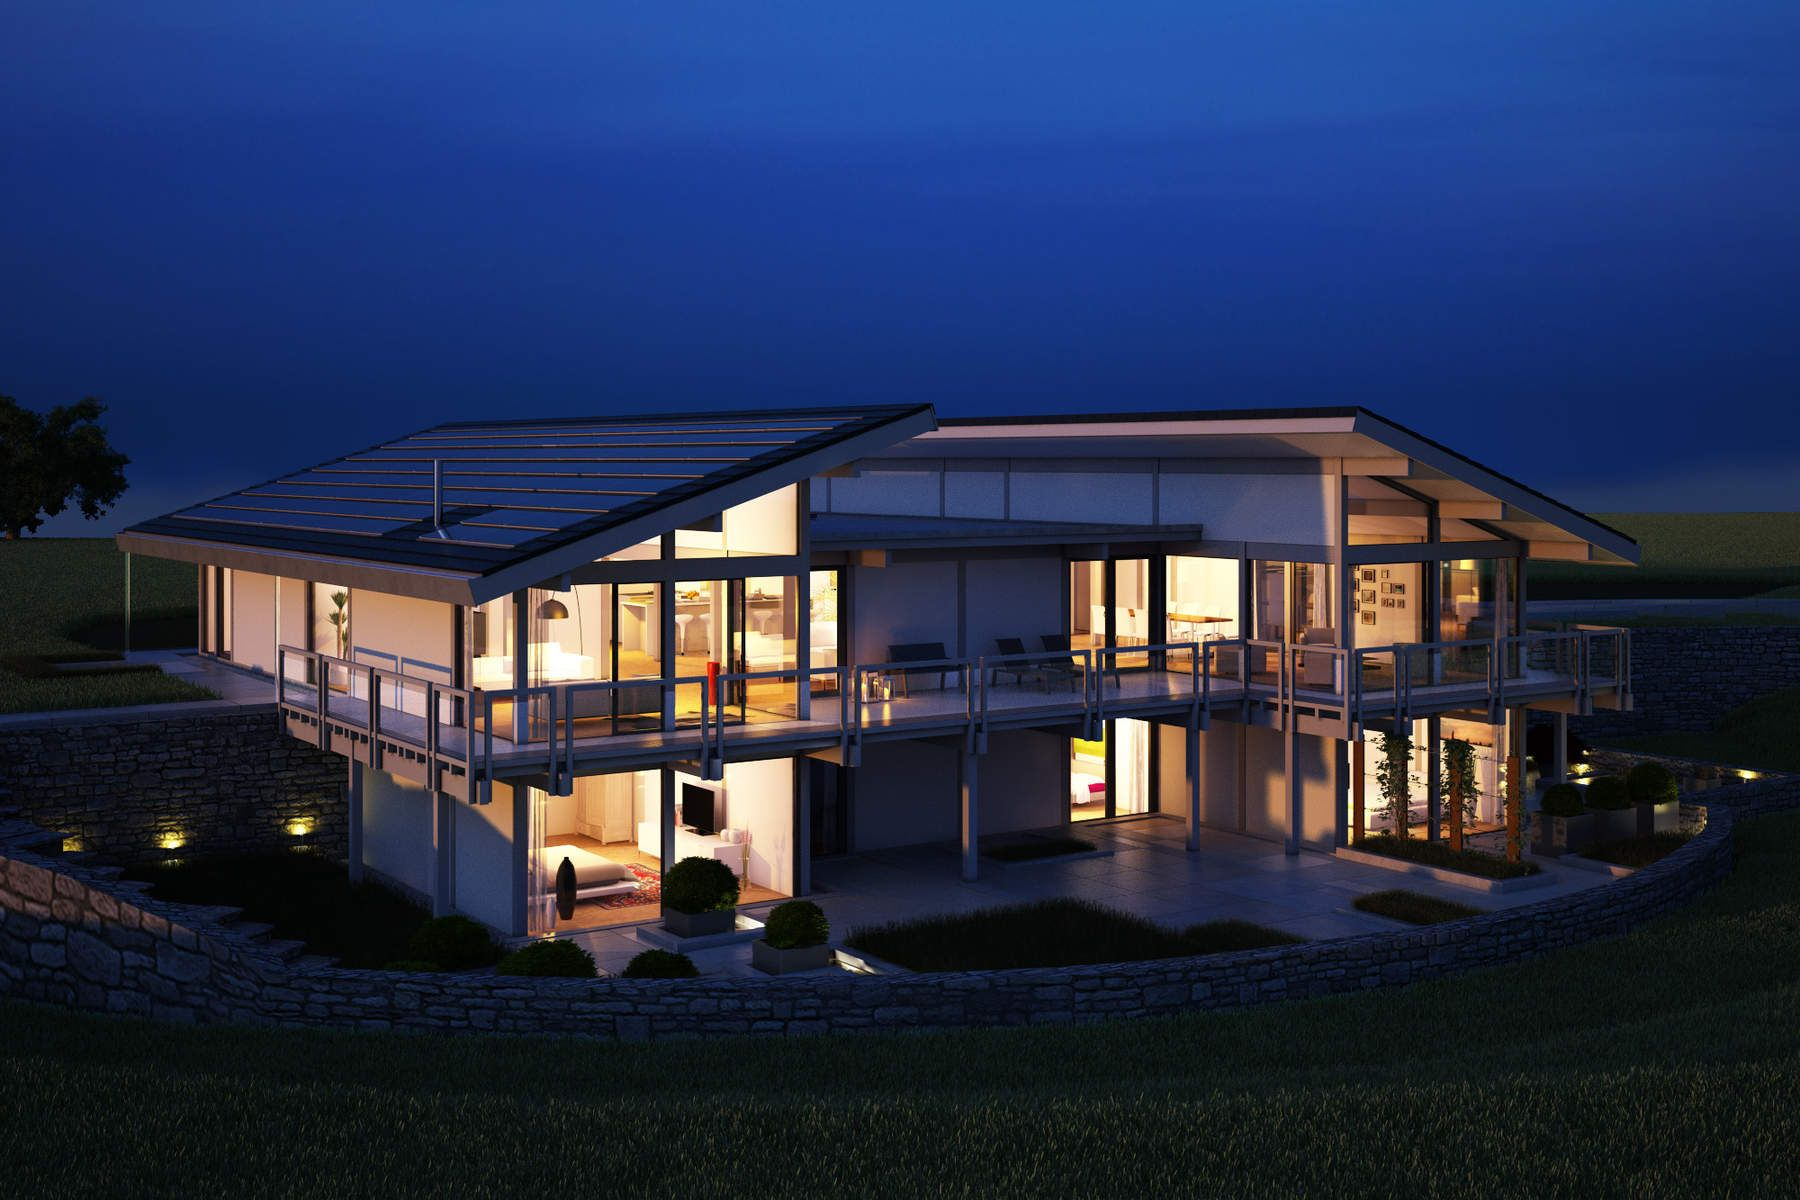 Single Family Home for Active at THE BUTTERFLY BY DAVINCI - RENDERING Bridgehampton, New York 11932 United States